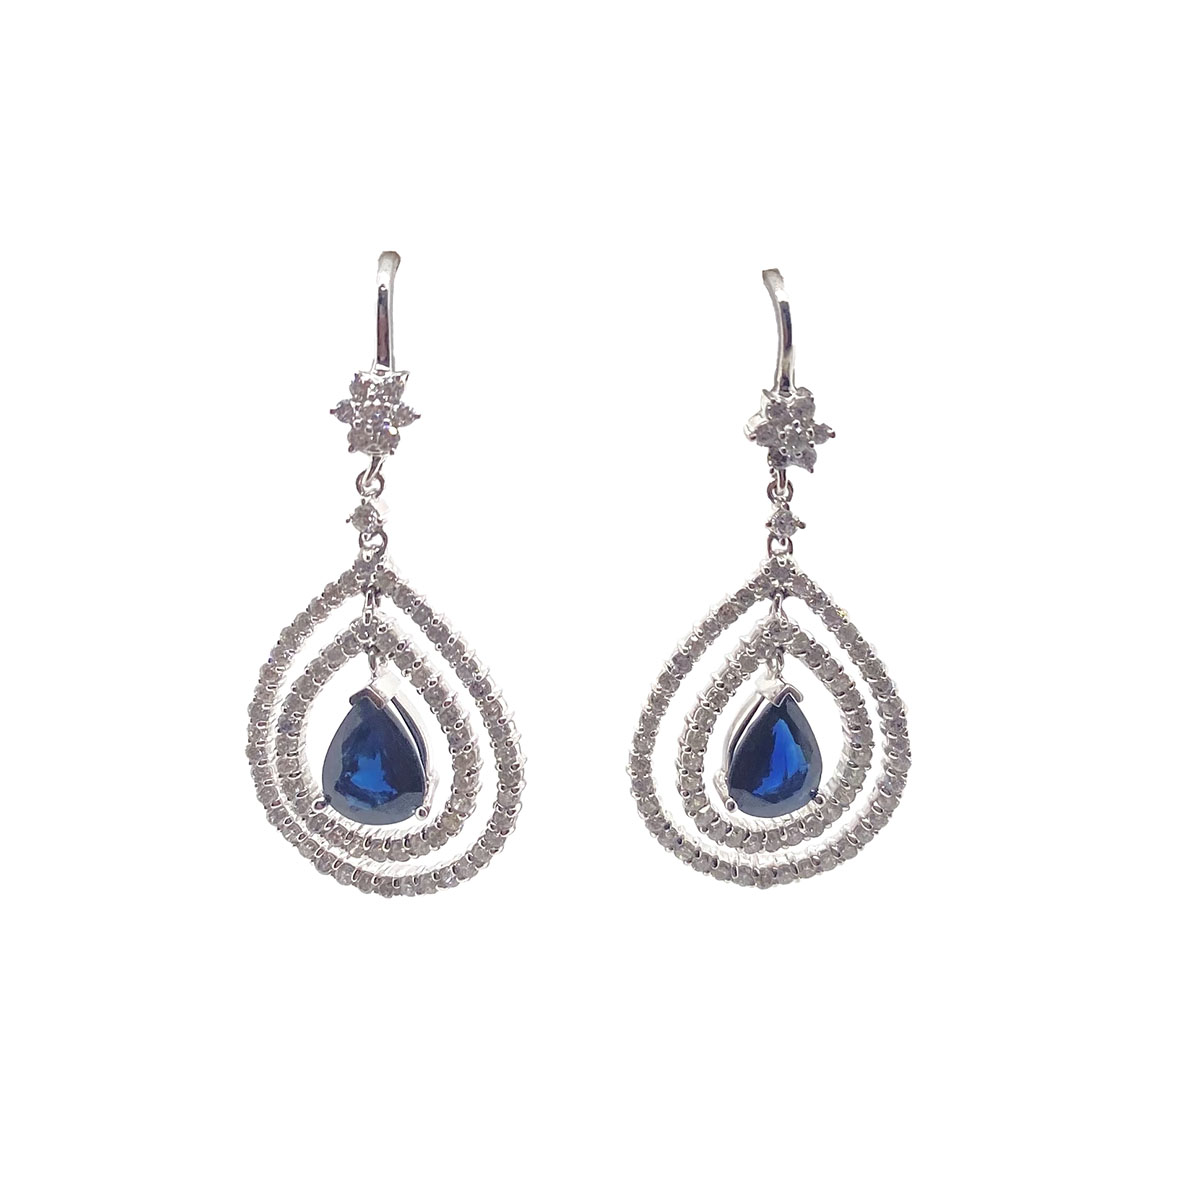 14 Karat White Gold Pear Shaped Blue Sapphire and Diamond Dangle Earrings